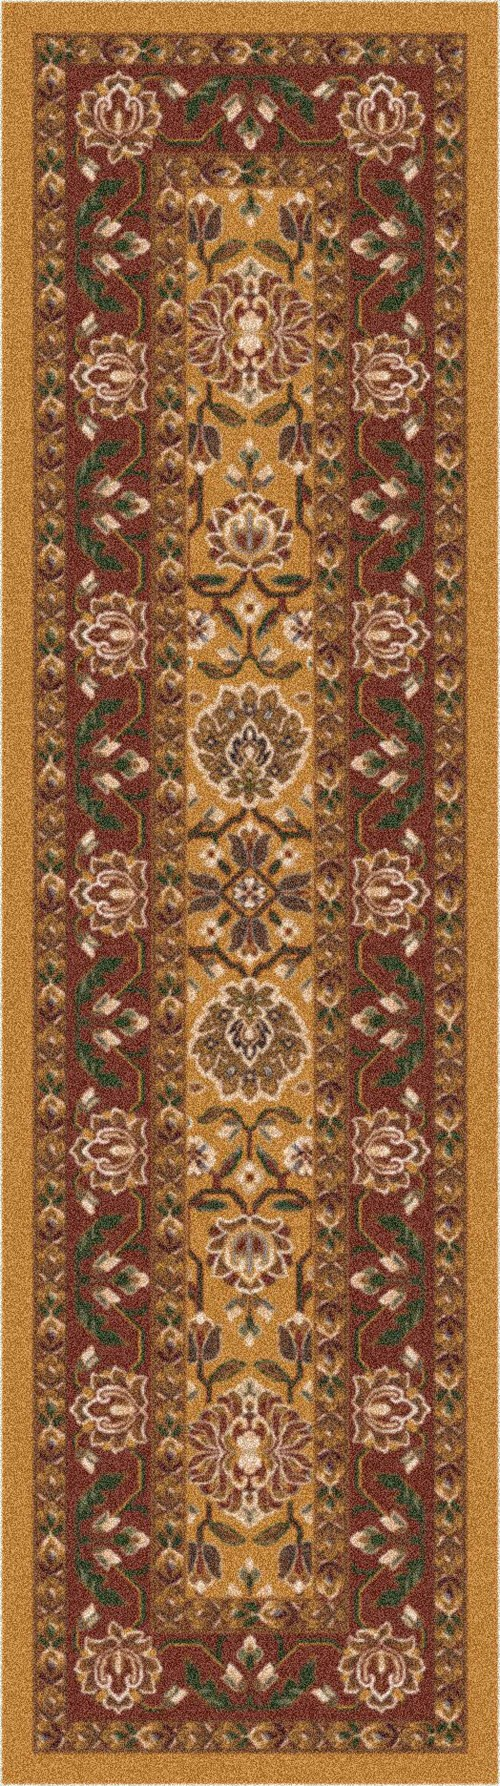 Spice Gold (167)  Traditional / Oriental Area Rug